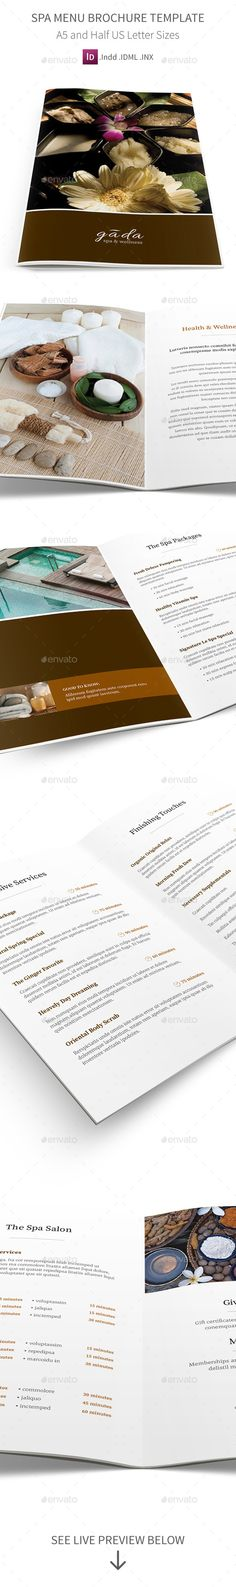 spa menu brochure a5 half letter sizes spa menu letter size and